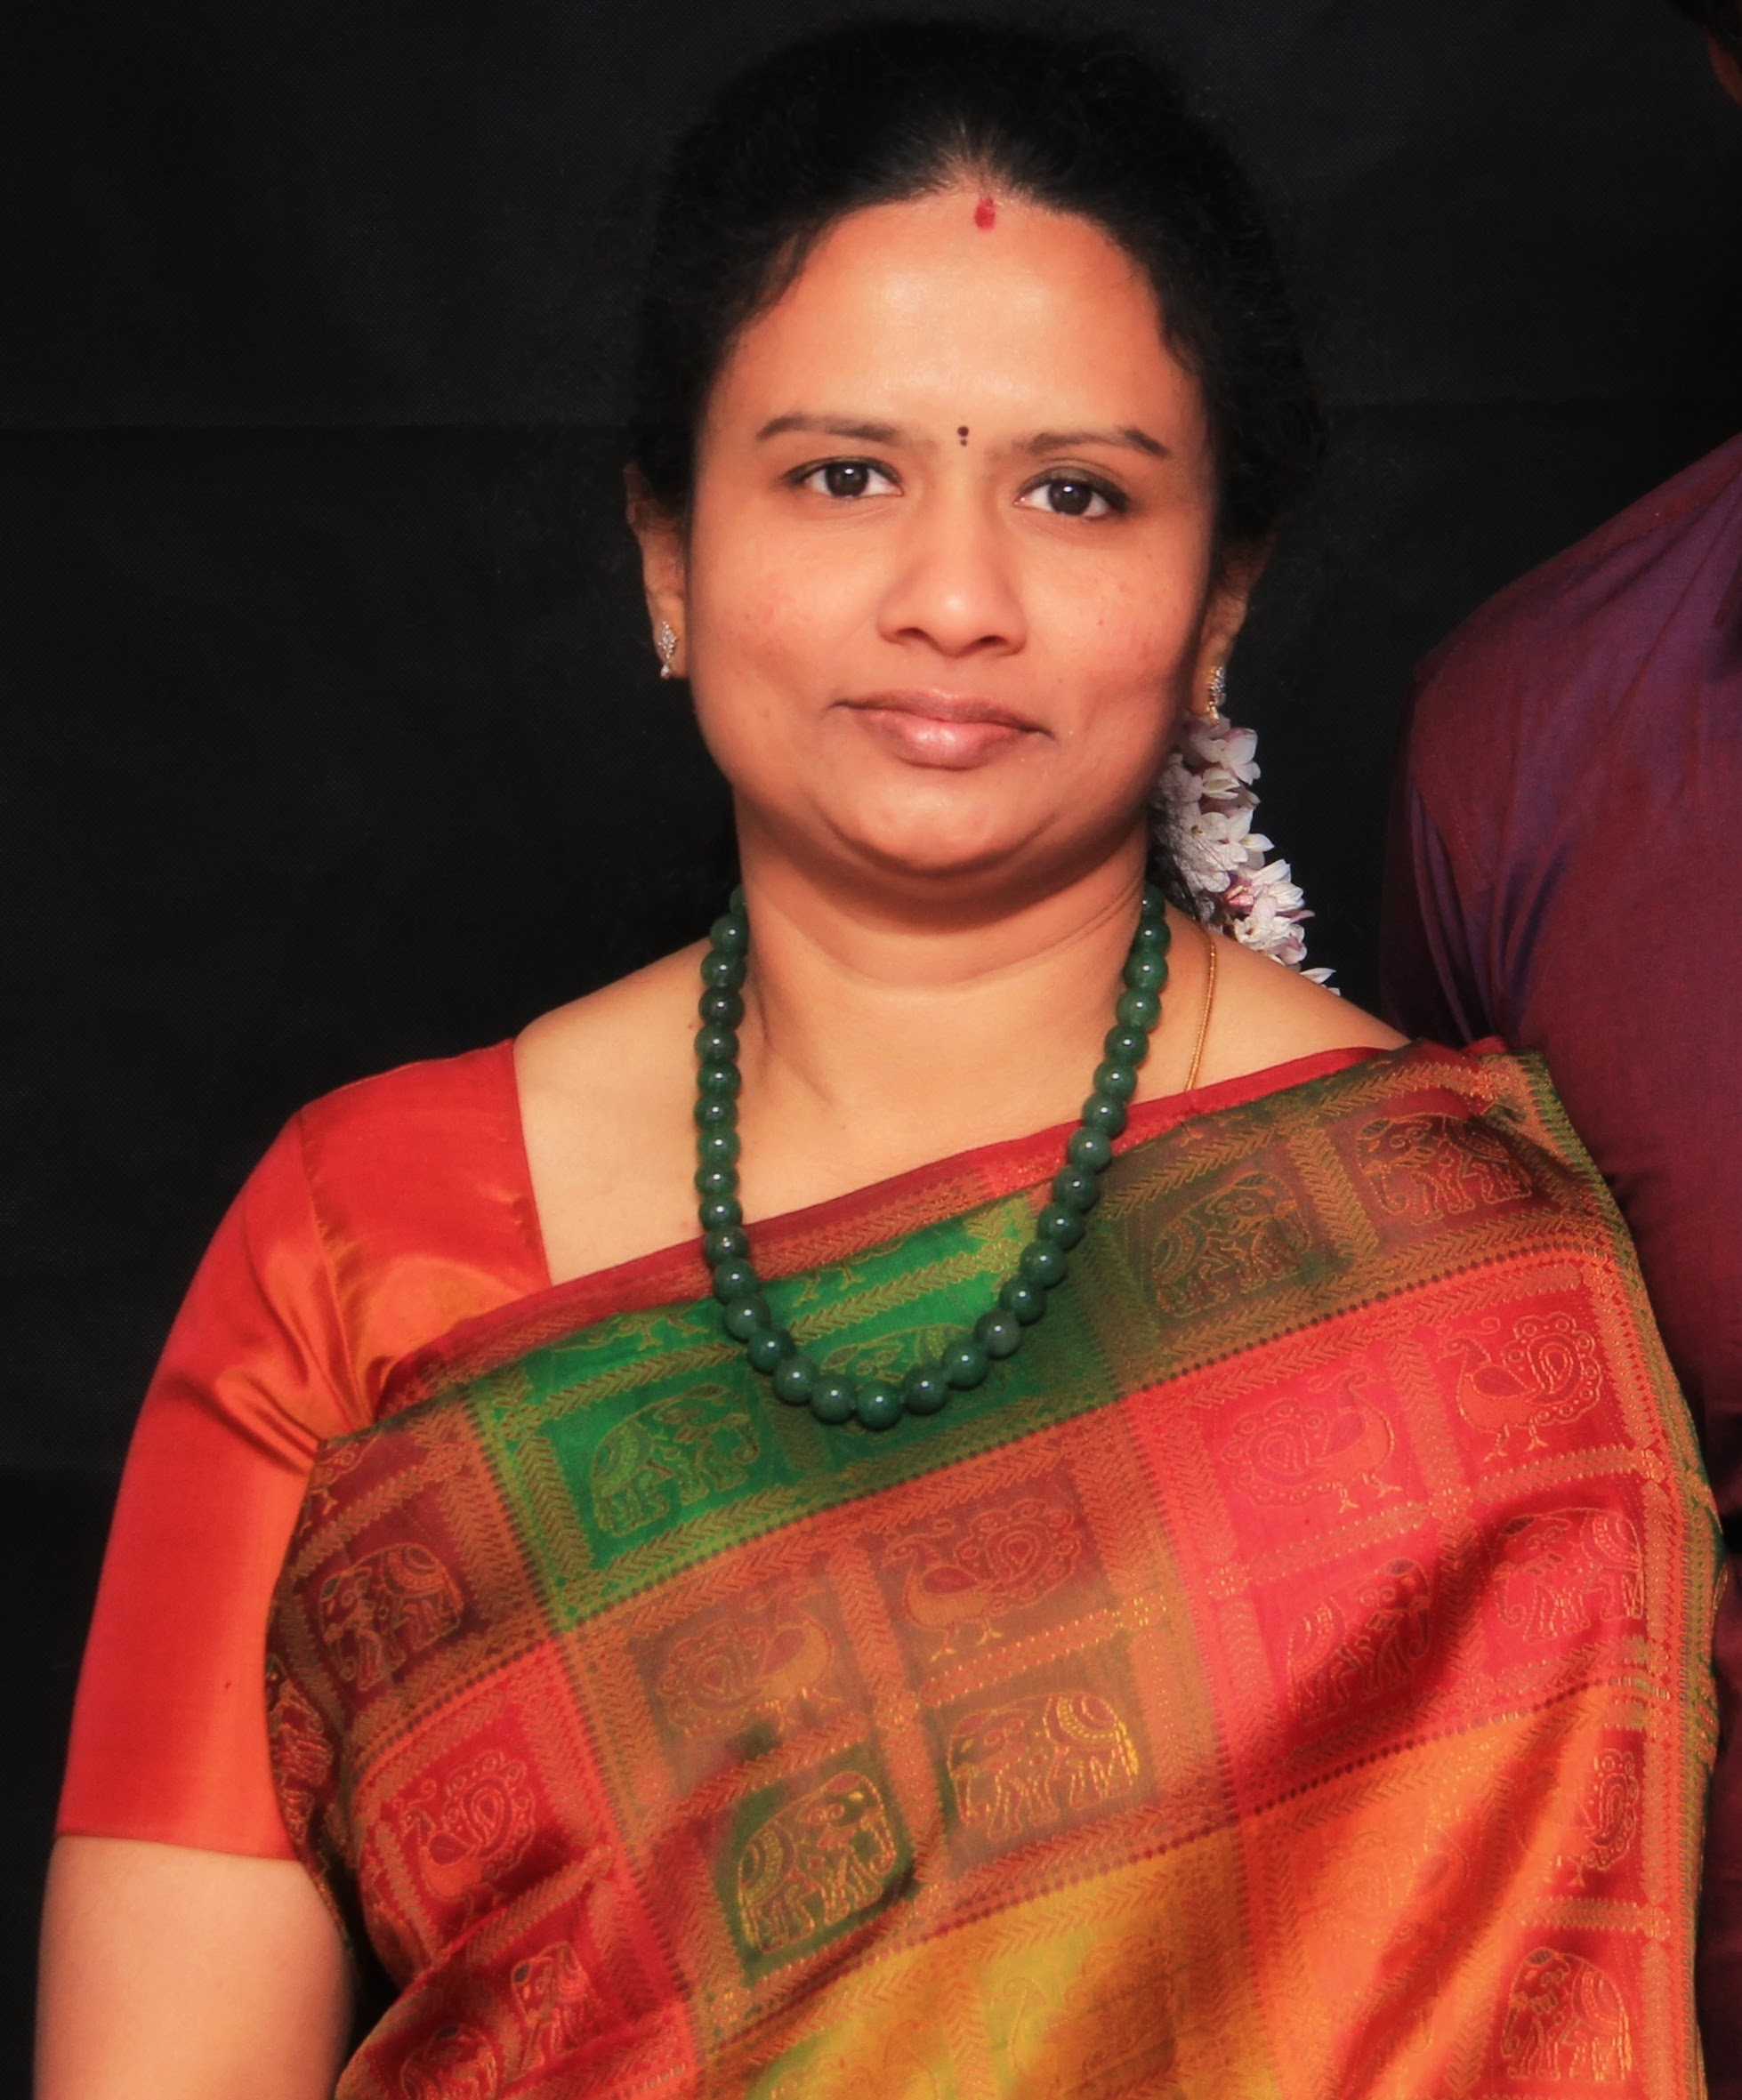 "Anudeepa Kadiresan - I am Anudeepa Kadiresan managing director of Dravidianart.I'm from Tamil Nadu southern part of India. Dravidian means ethnic group of indigenous people who speaks Tamil language. Proud to name my art gallery as Dravidian art.I'm a self-taught artist. I have passion in art from my childhood. God's blessing and family support made me to travel smooth in this mesmerising art world. My day won't get completed without sketching or doodling. I have tried variety of mediums and still in the learning process to master these wonderful art forms.""Immerse, mesmerise, adore and be courageous to perceive your passion in art"" Anudeepa kadiresan"